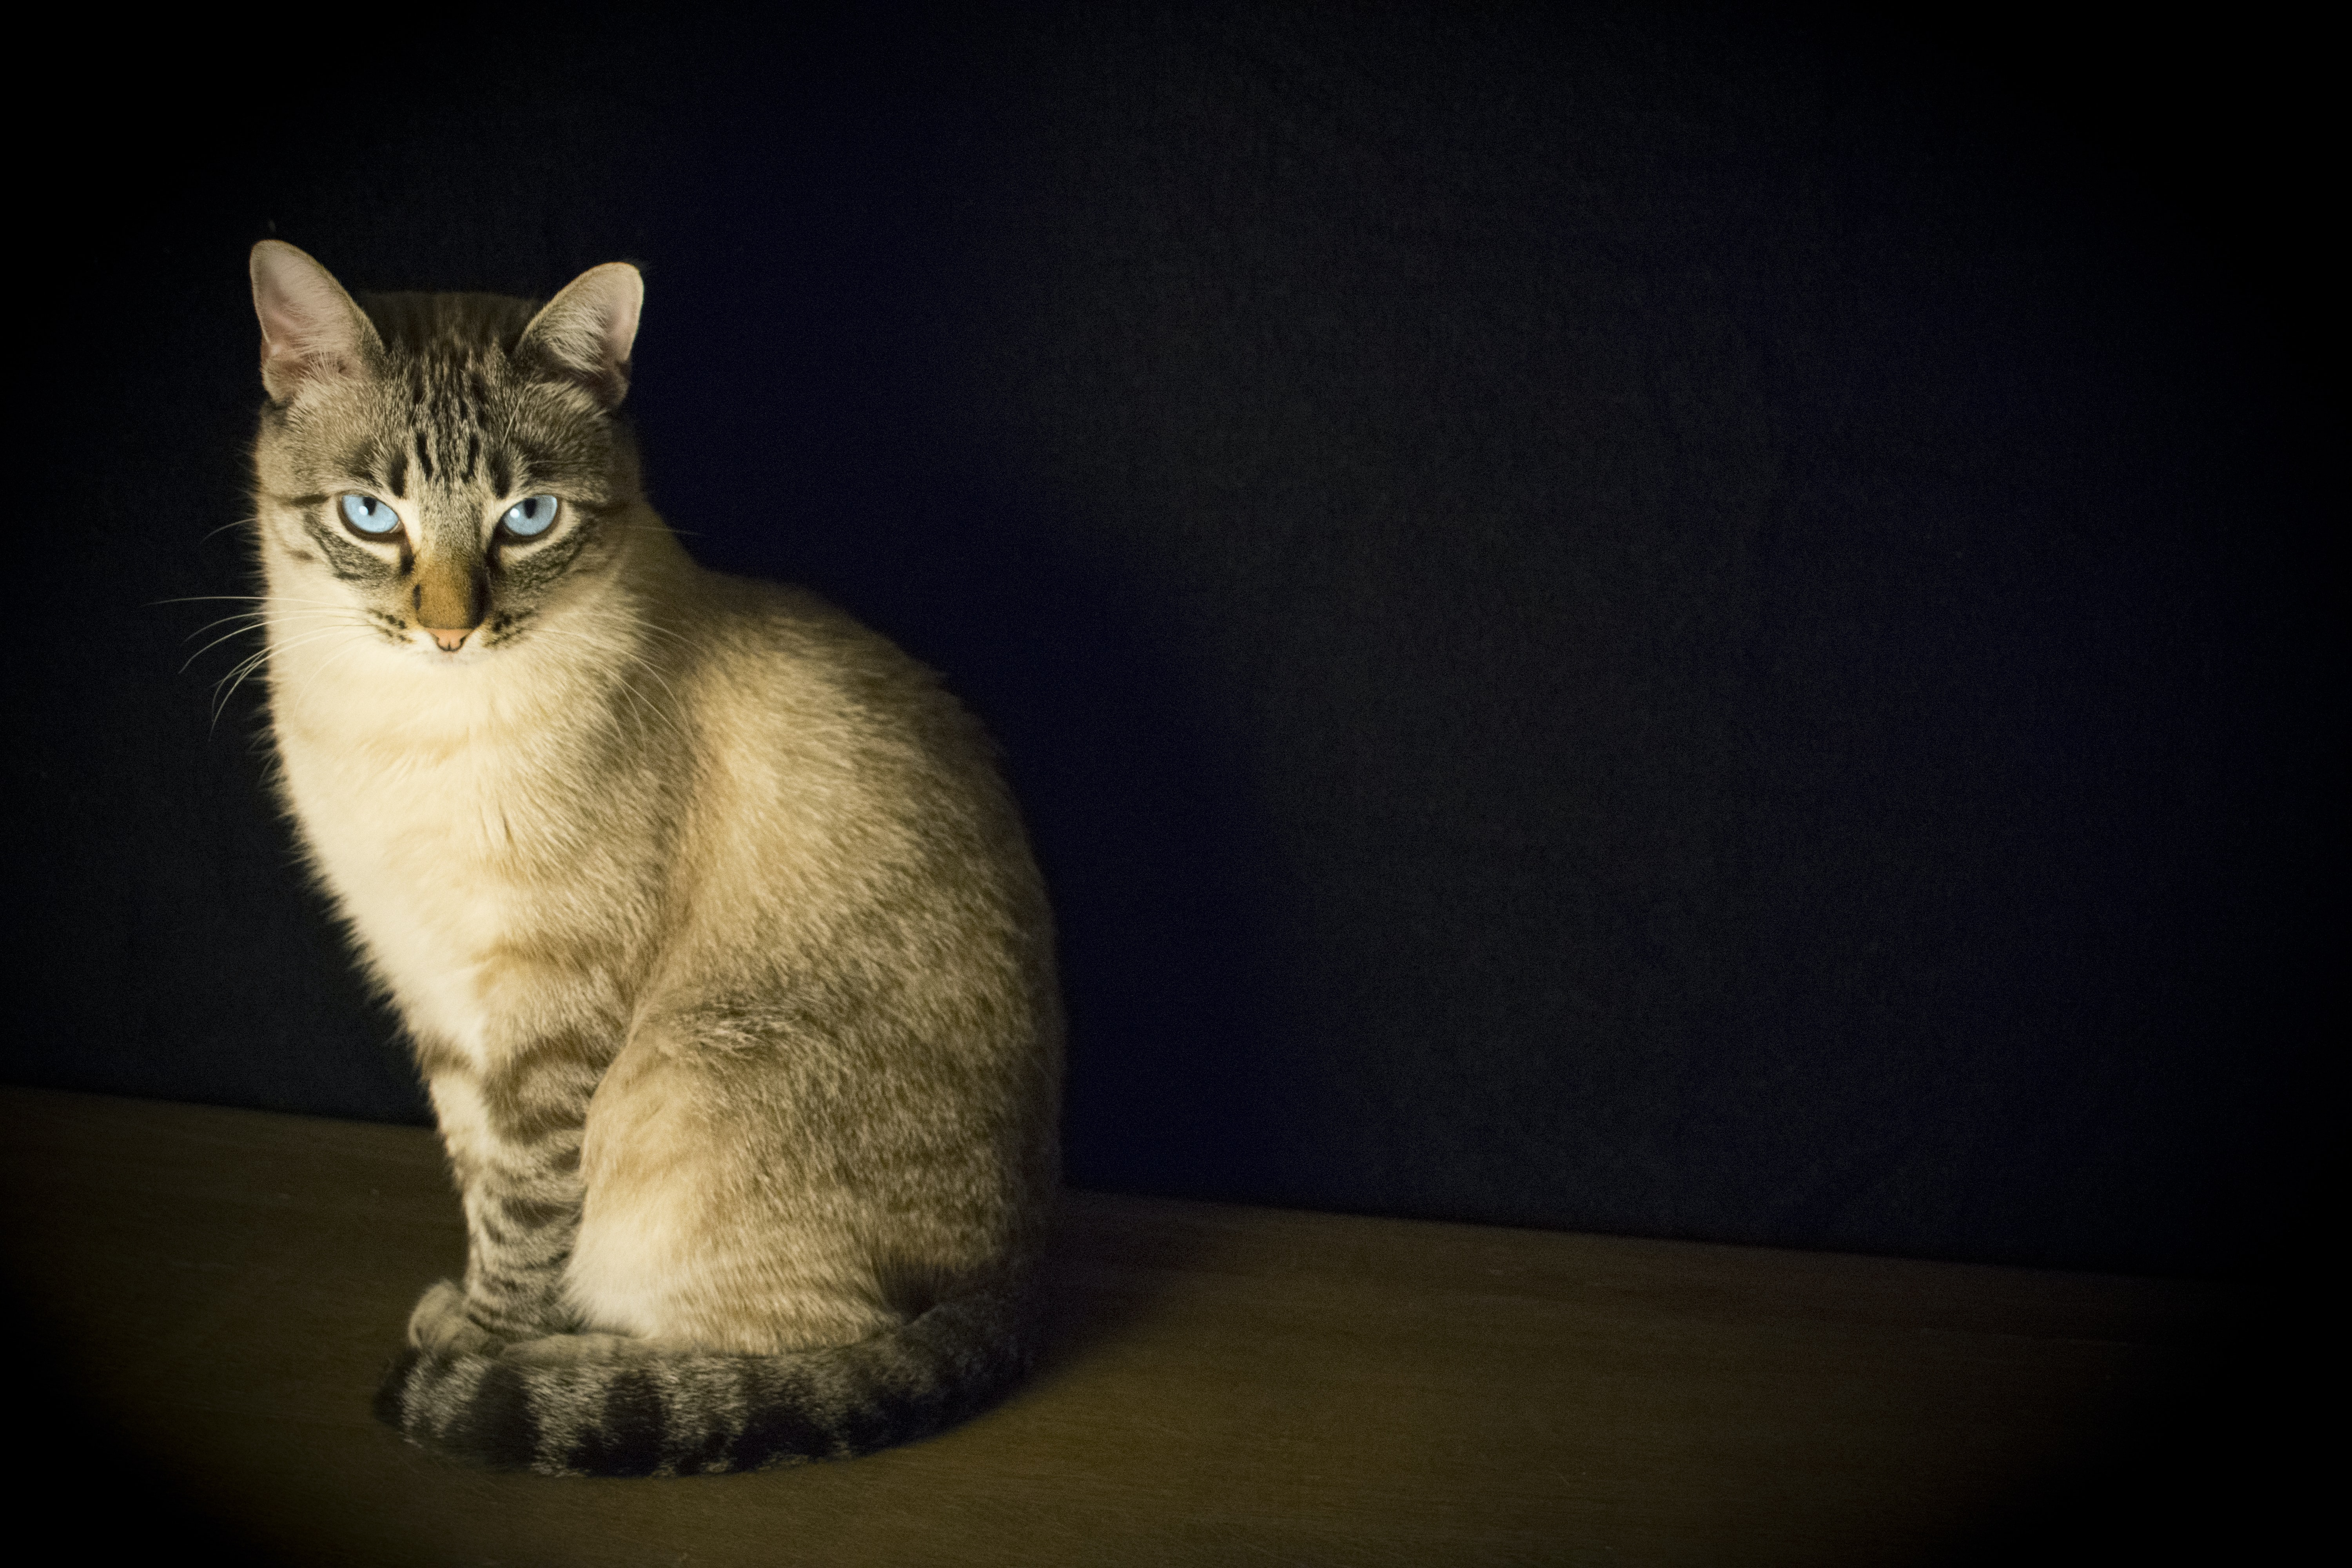 A cat sitting up staring at the camera, surrounded by a black background.